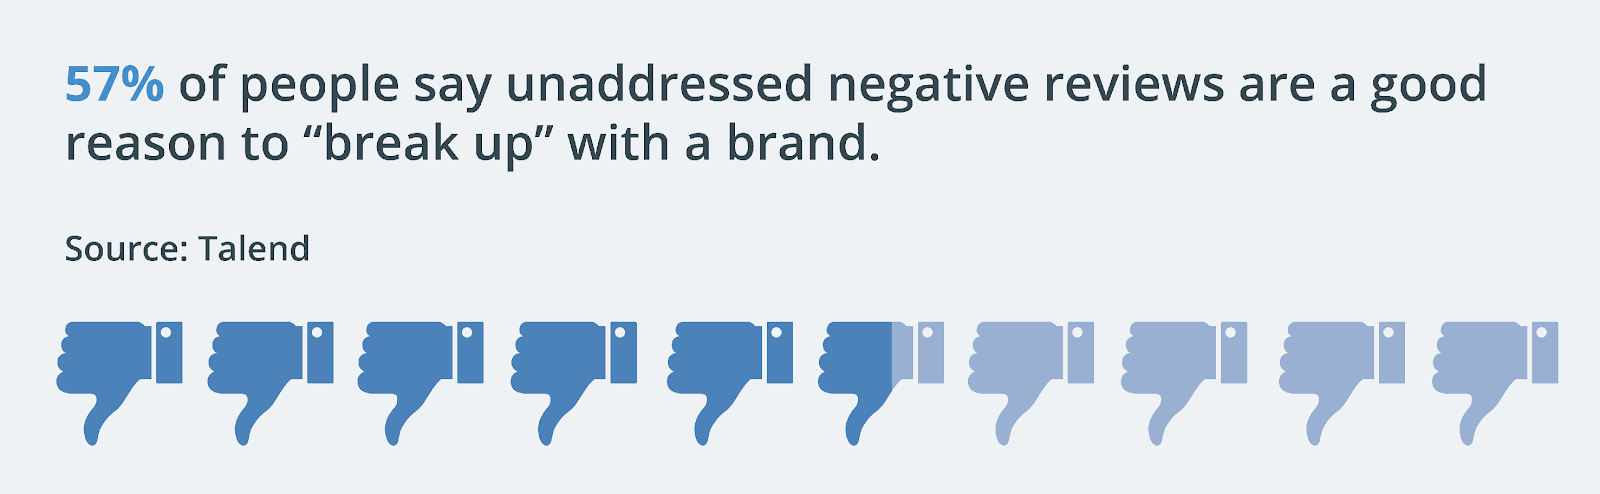 Negative reviews can hurt your brand